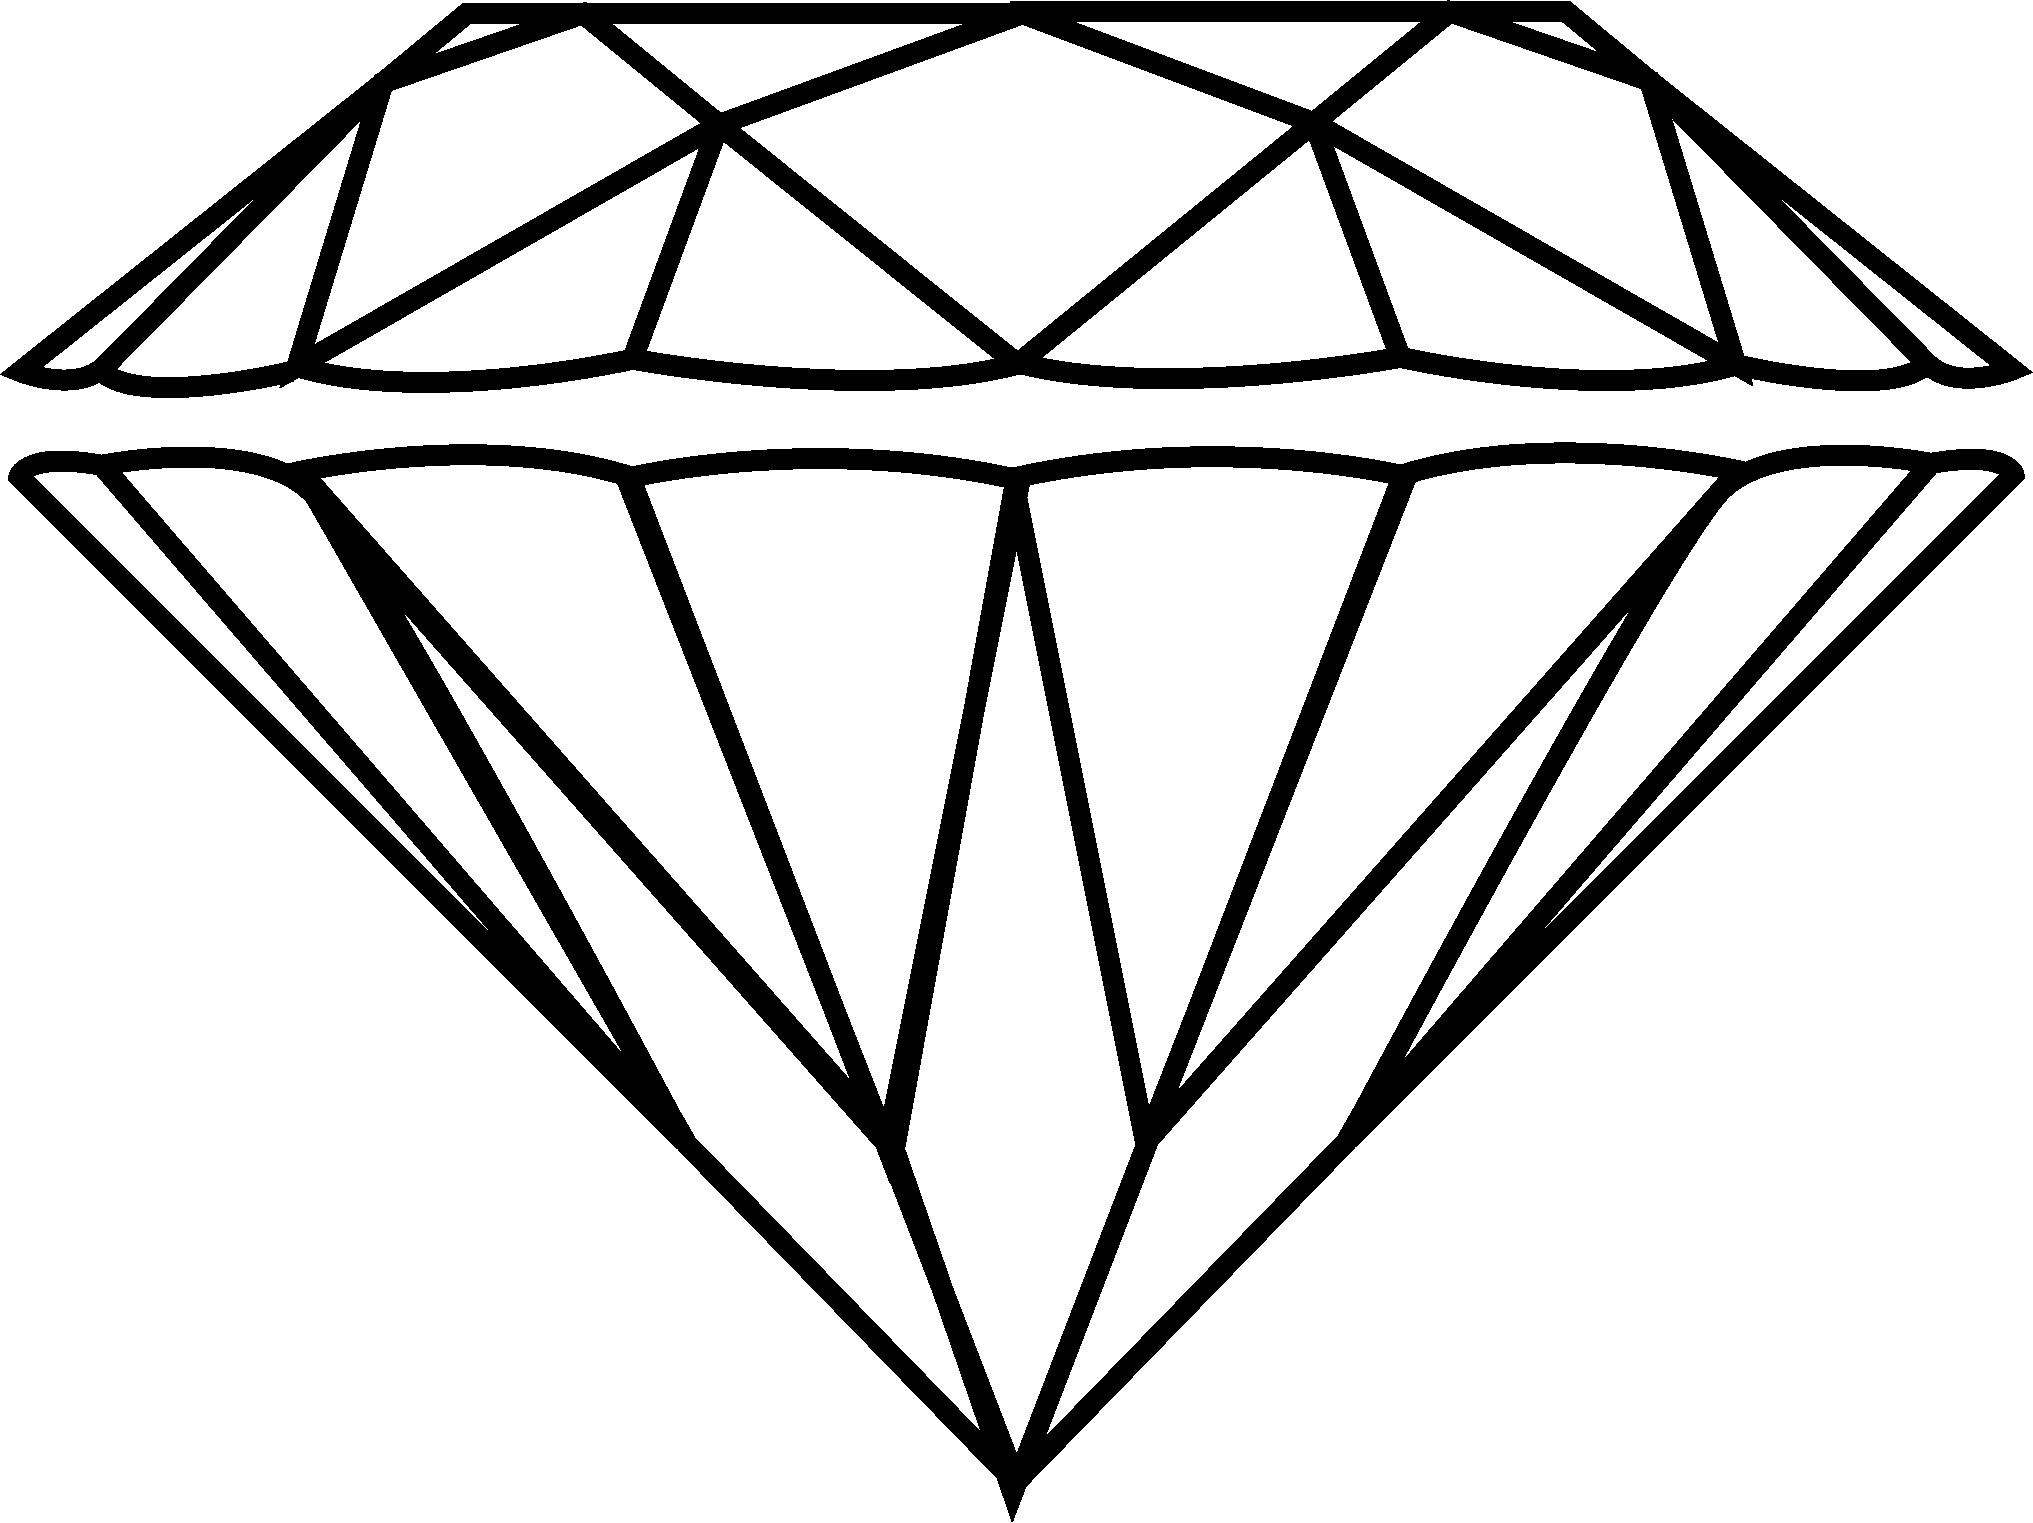 Diamonds clipart drawn. Diamond drawing images at